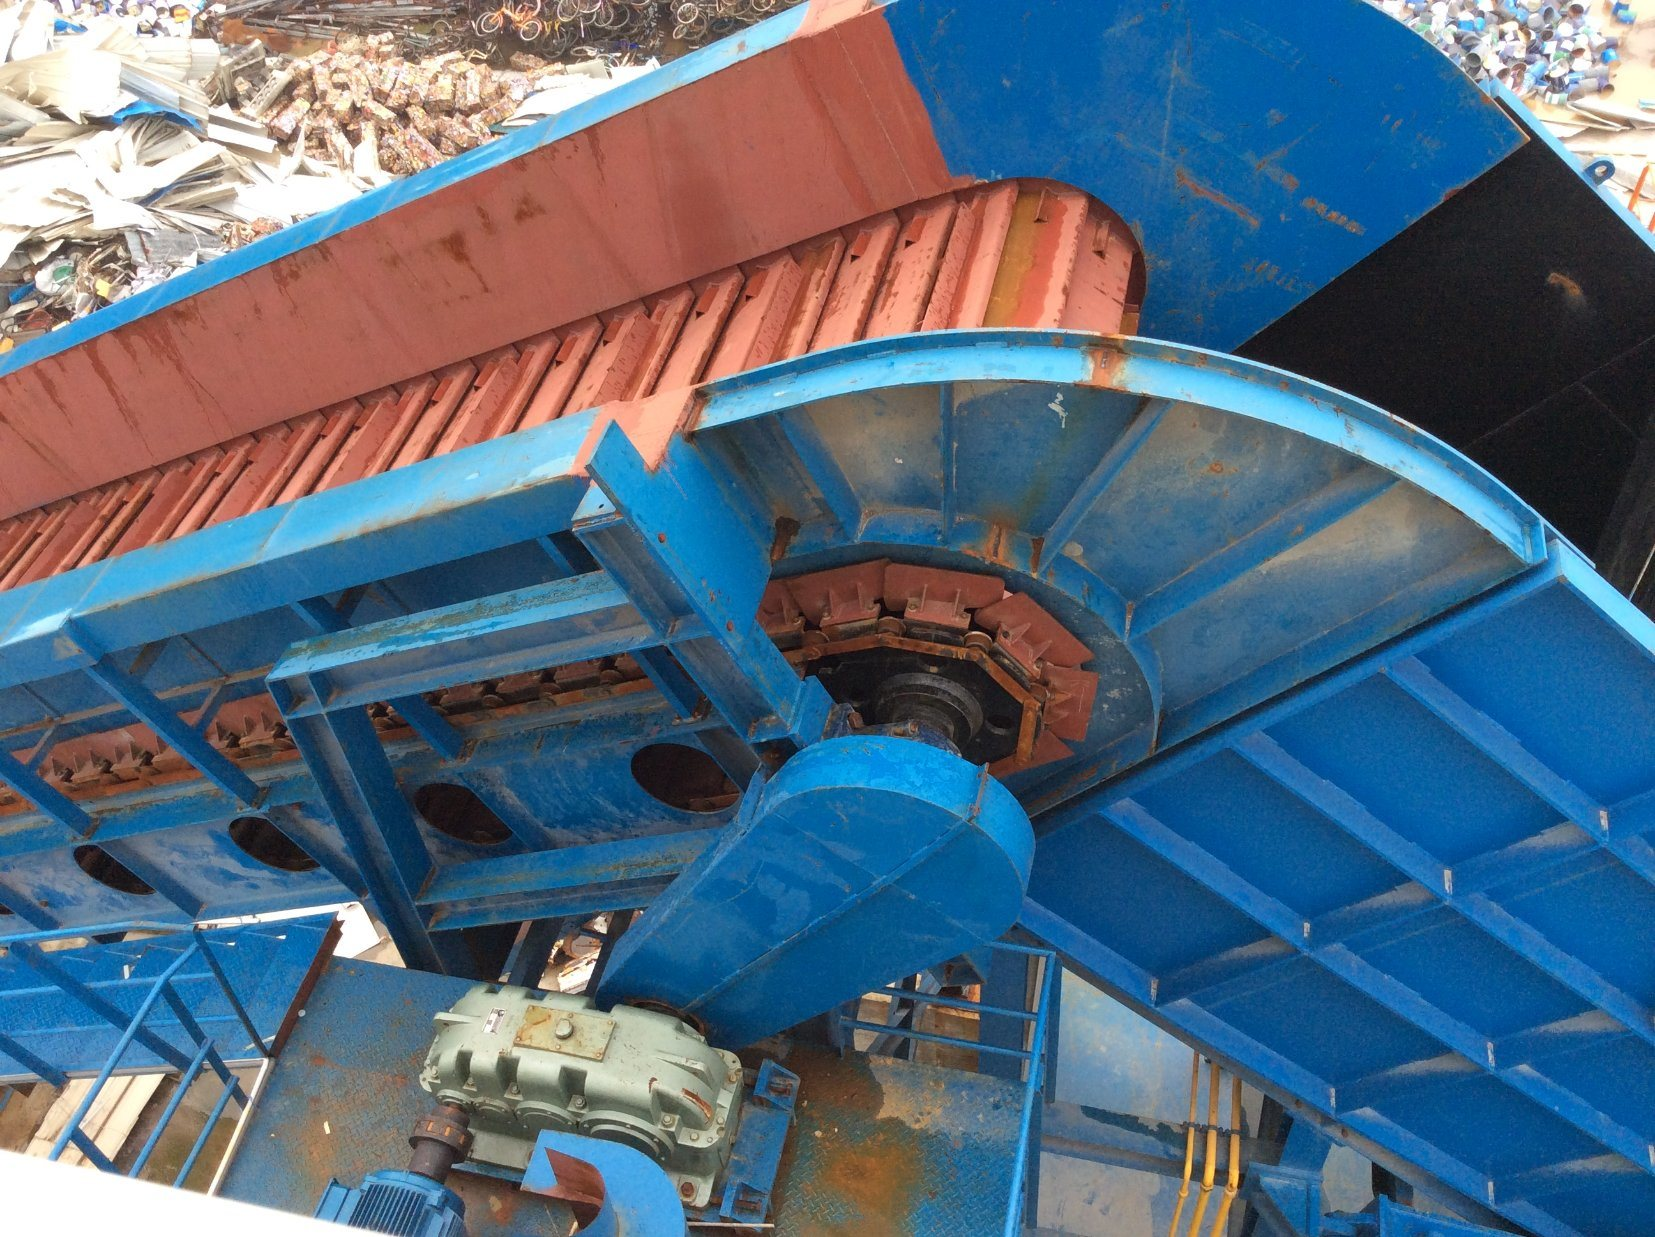 Psx-900 Scrap Shredder Machine